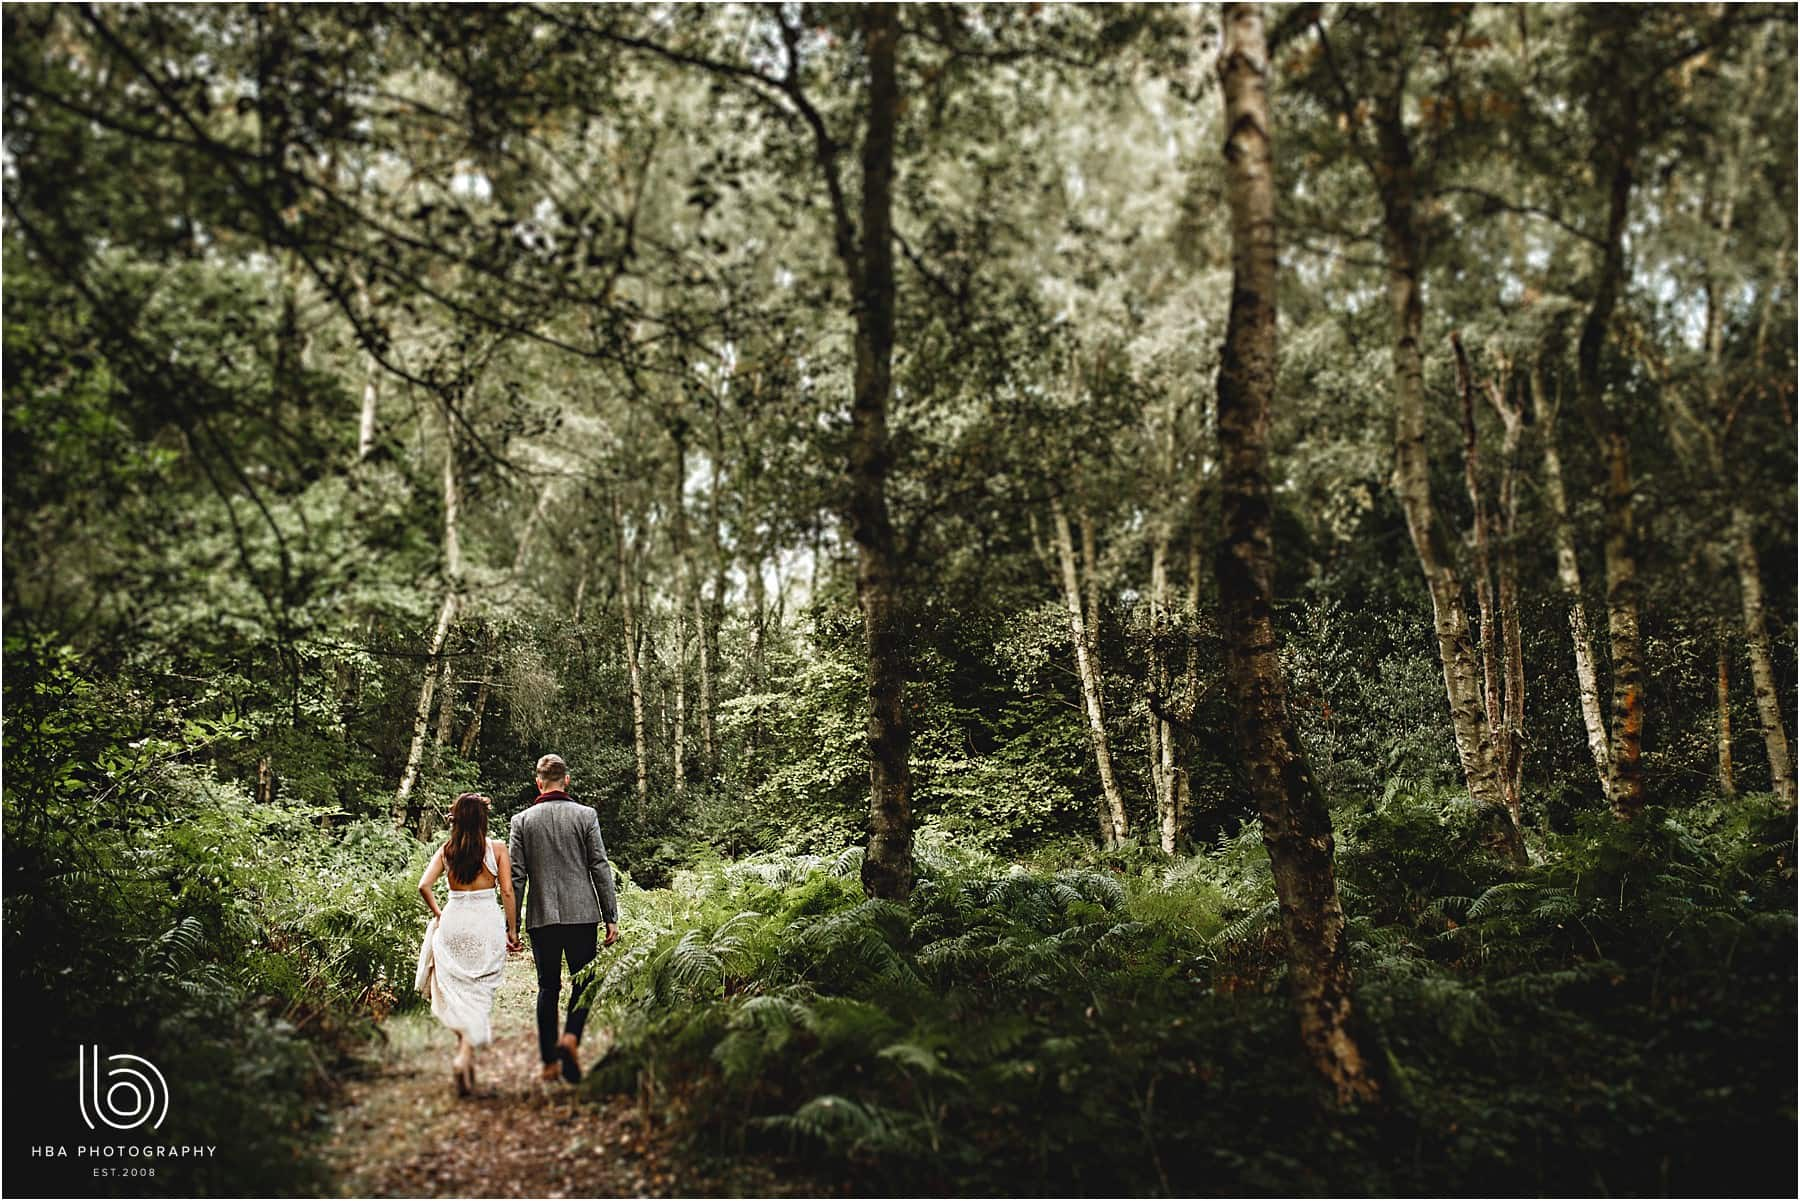 Bride and groom walking through the woodland